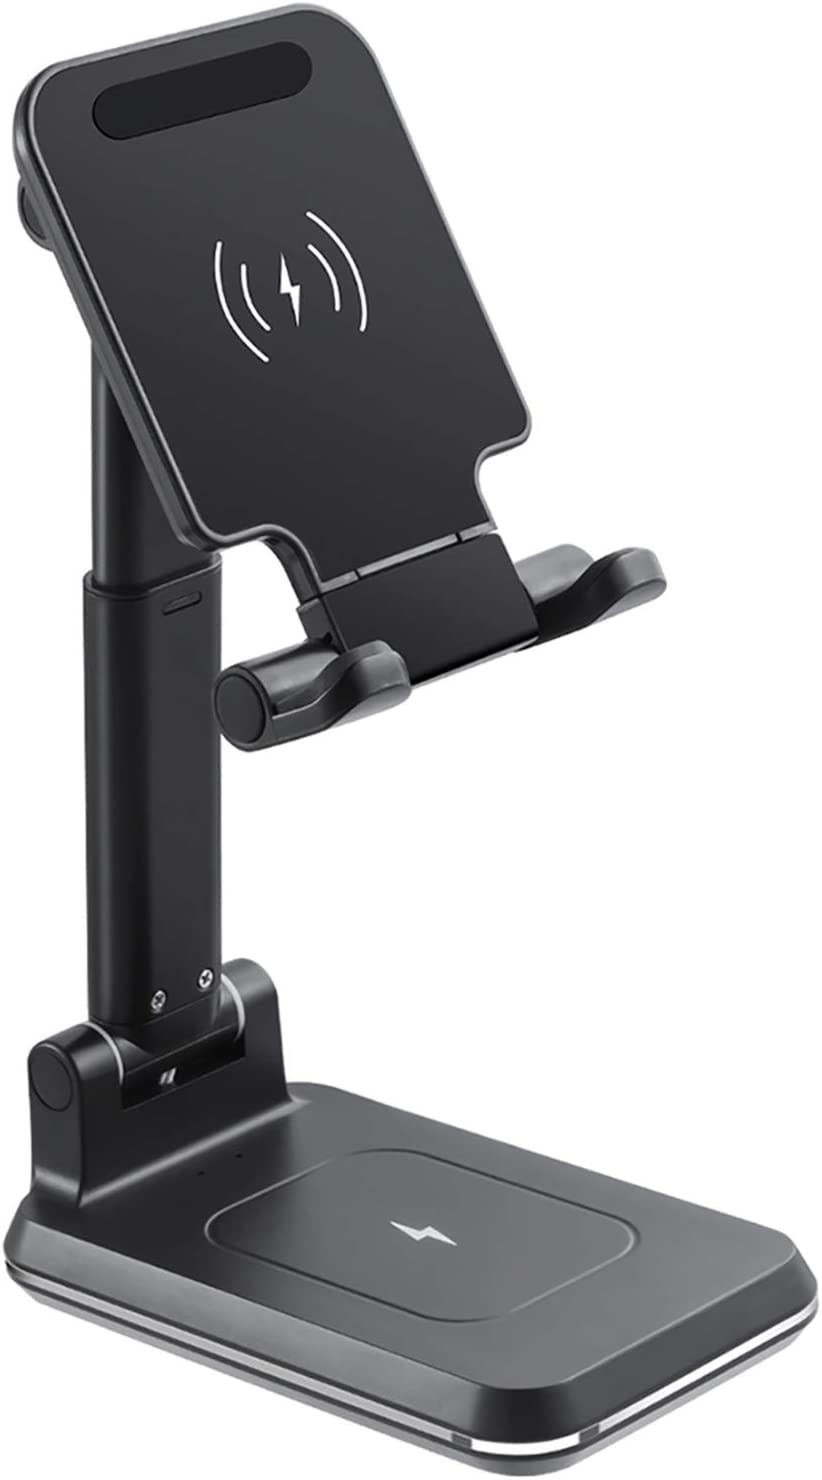 Fast Wireless Charging Stand for Desk Foldable Cell Phon 1 trend rank 2 in Max 45% OFF